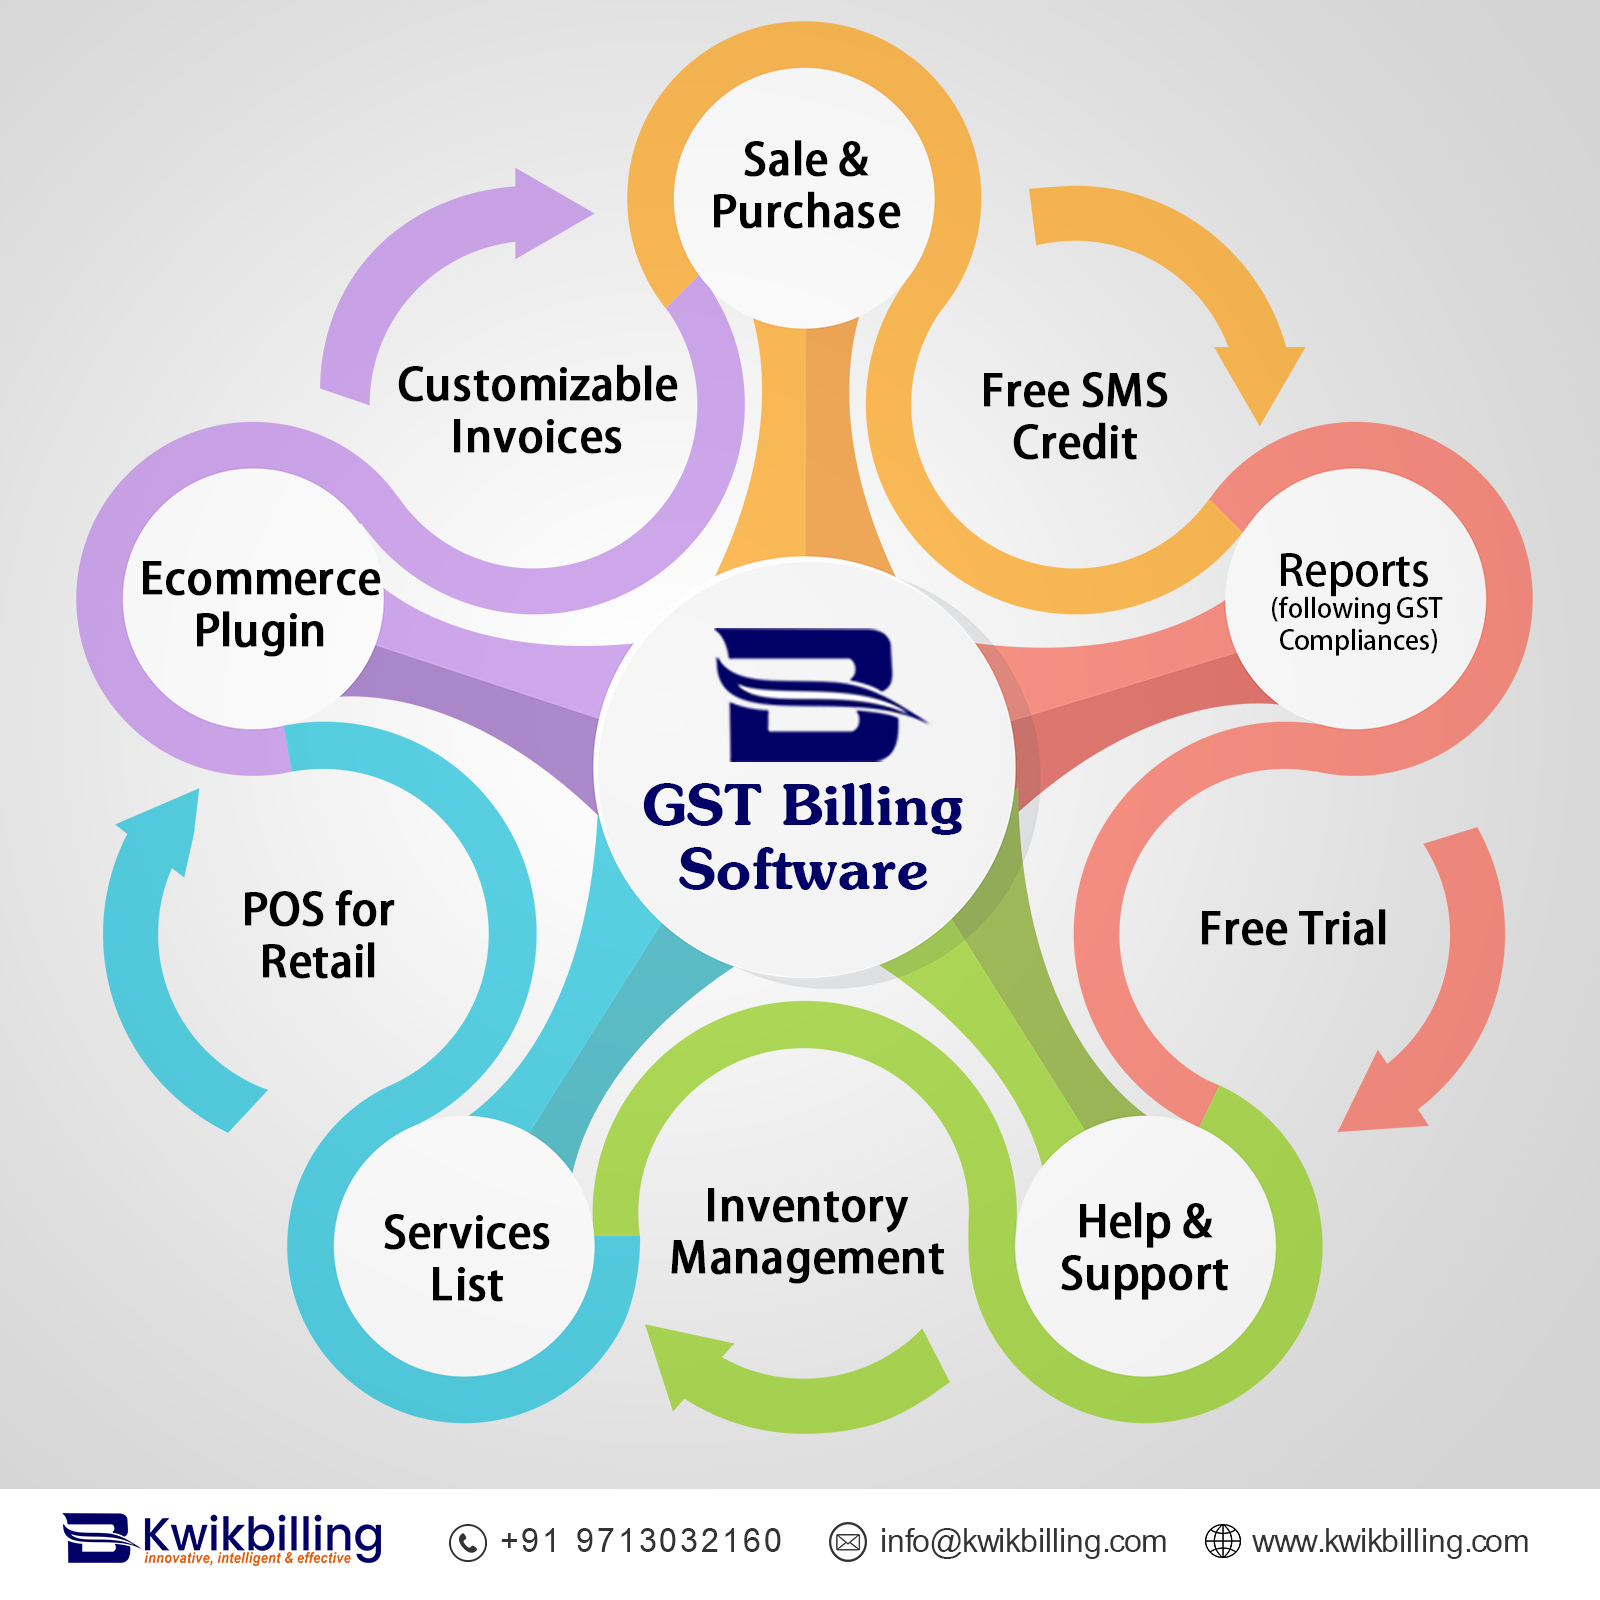 kwikbilling gst software allows you to prepare as many invoices as